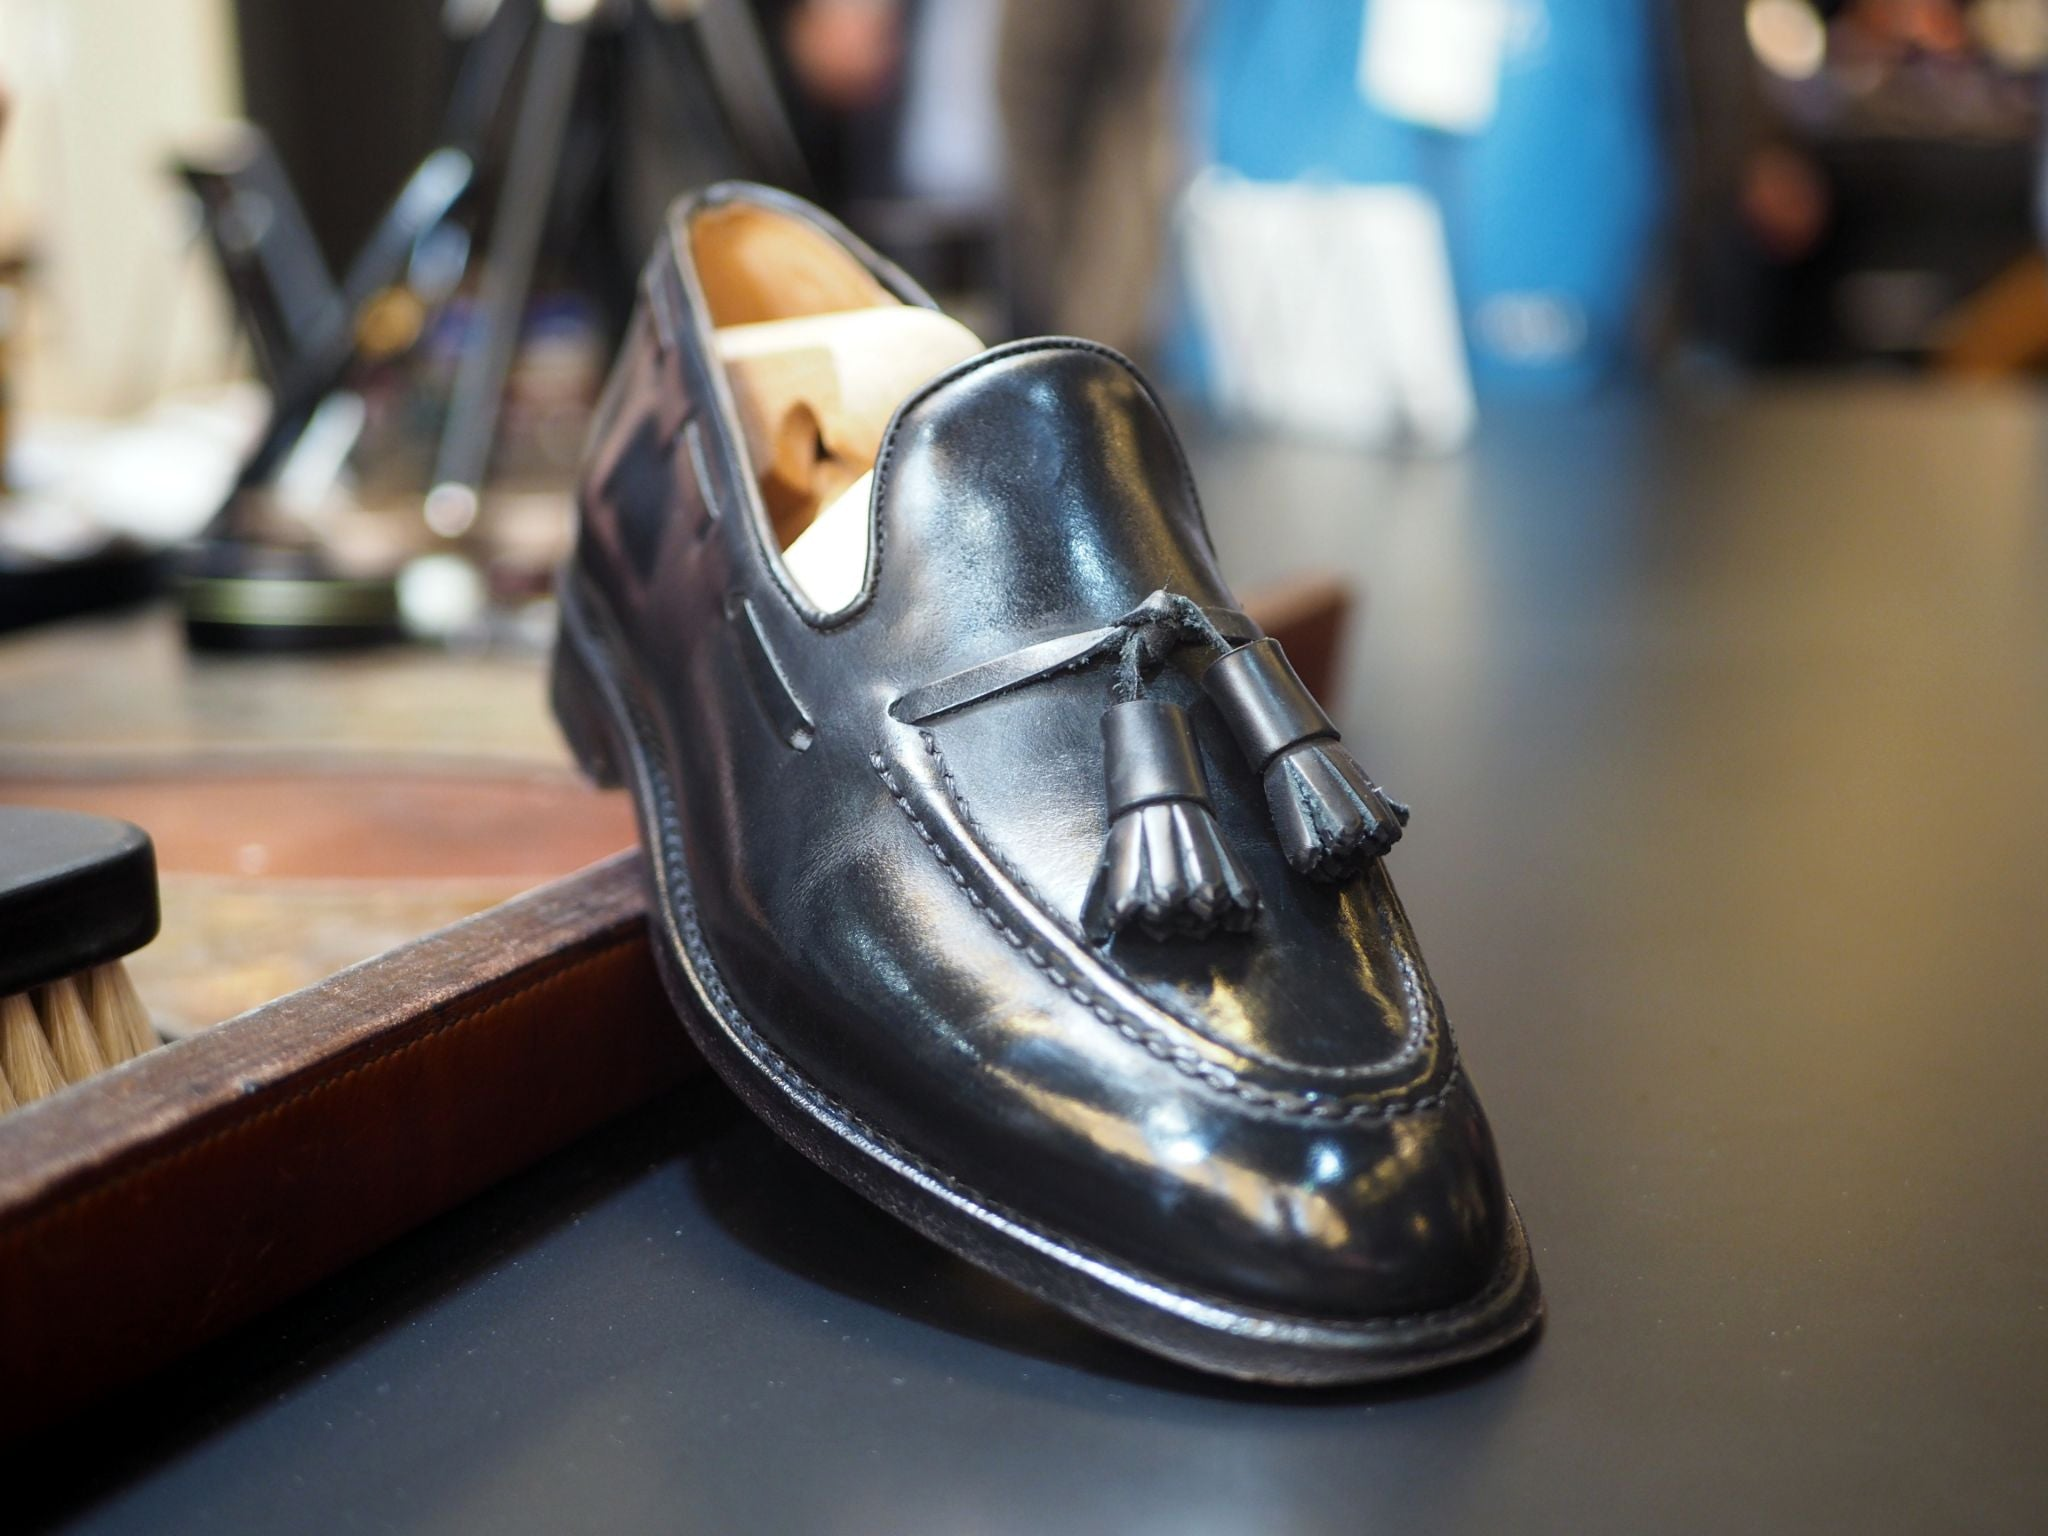 DLA Black shoes guide - my tassel loafers after shoecare and polishing